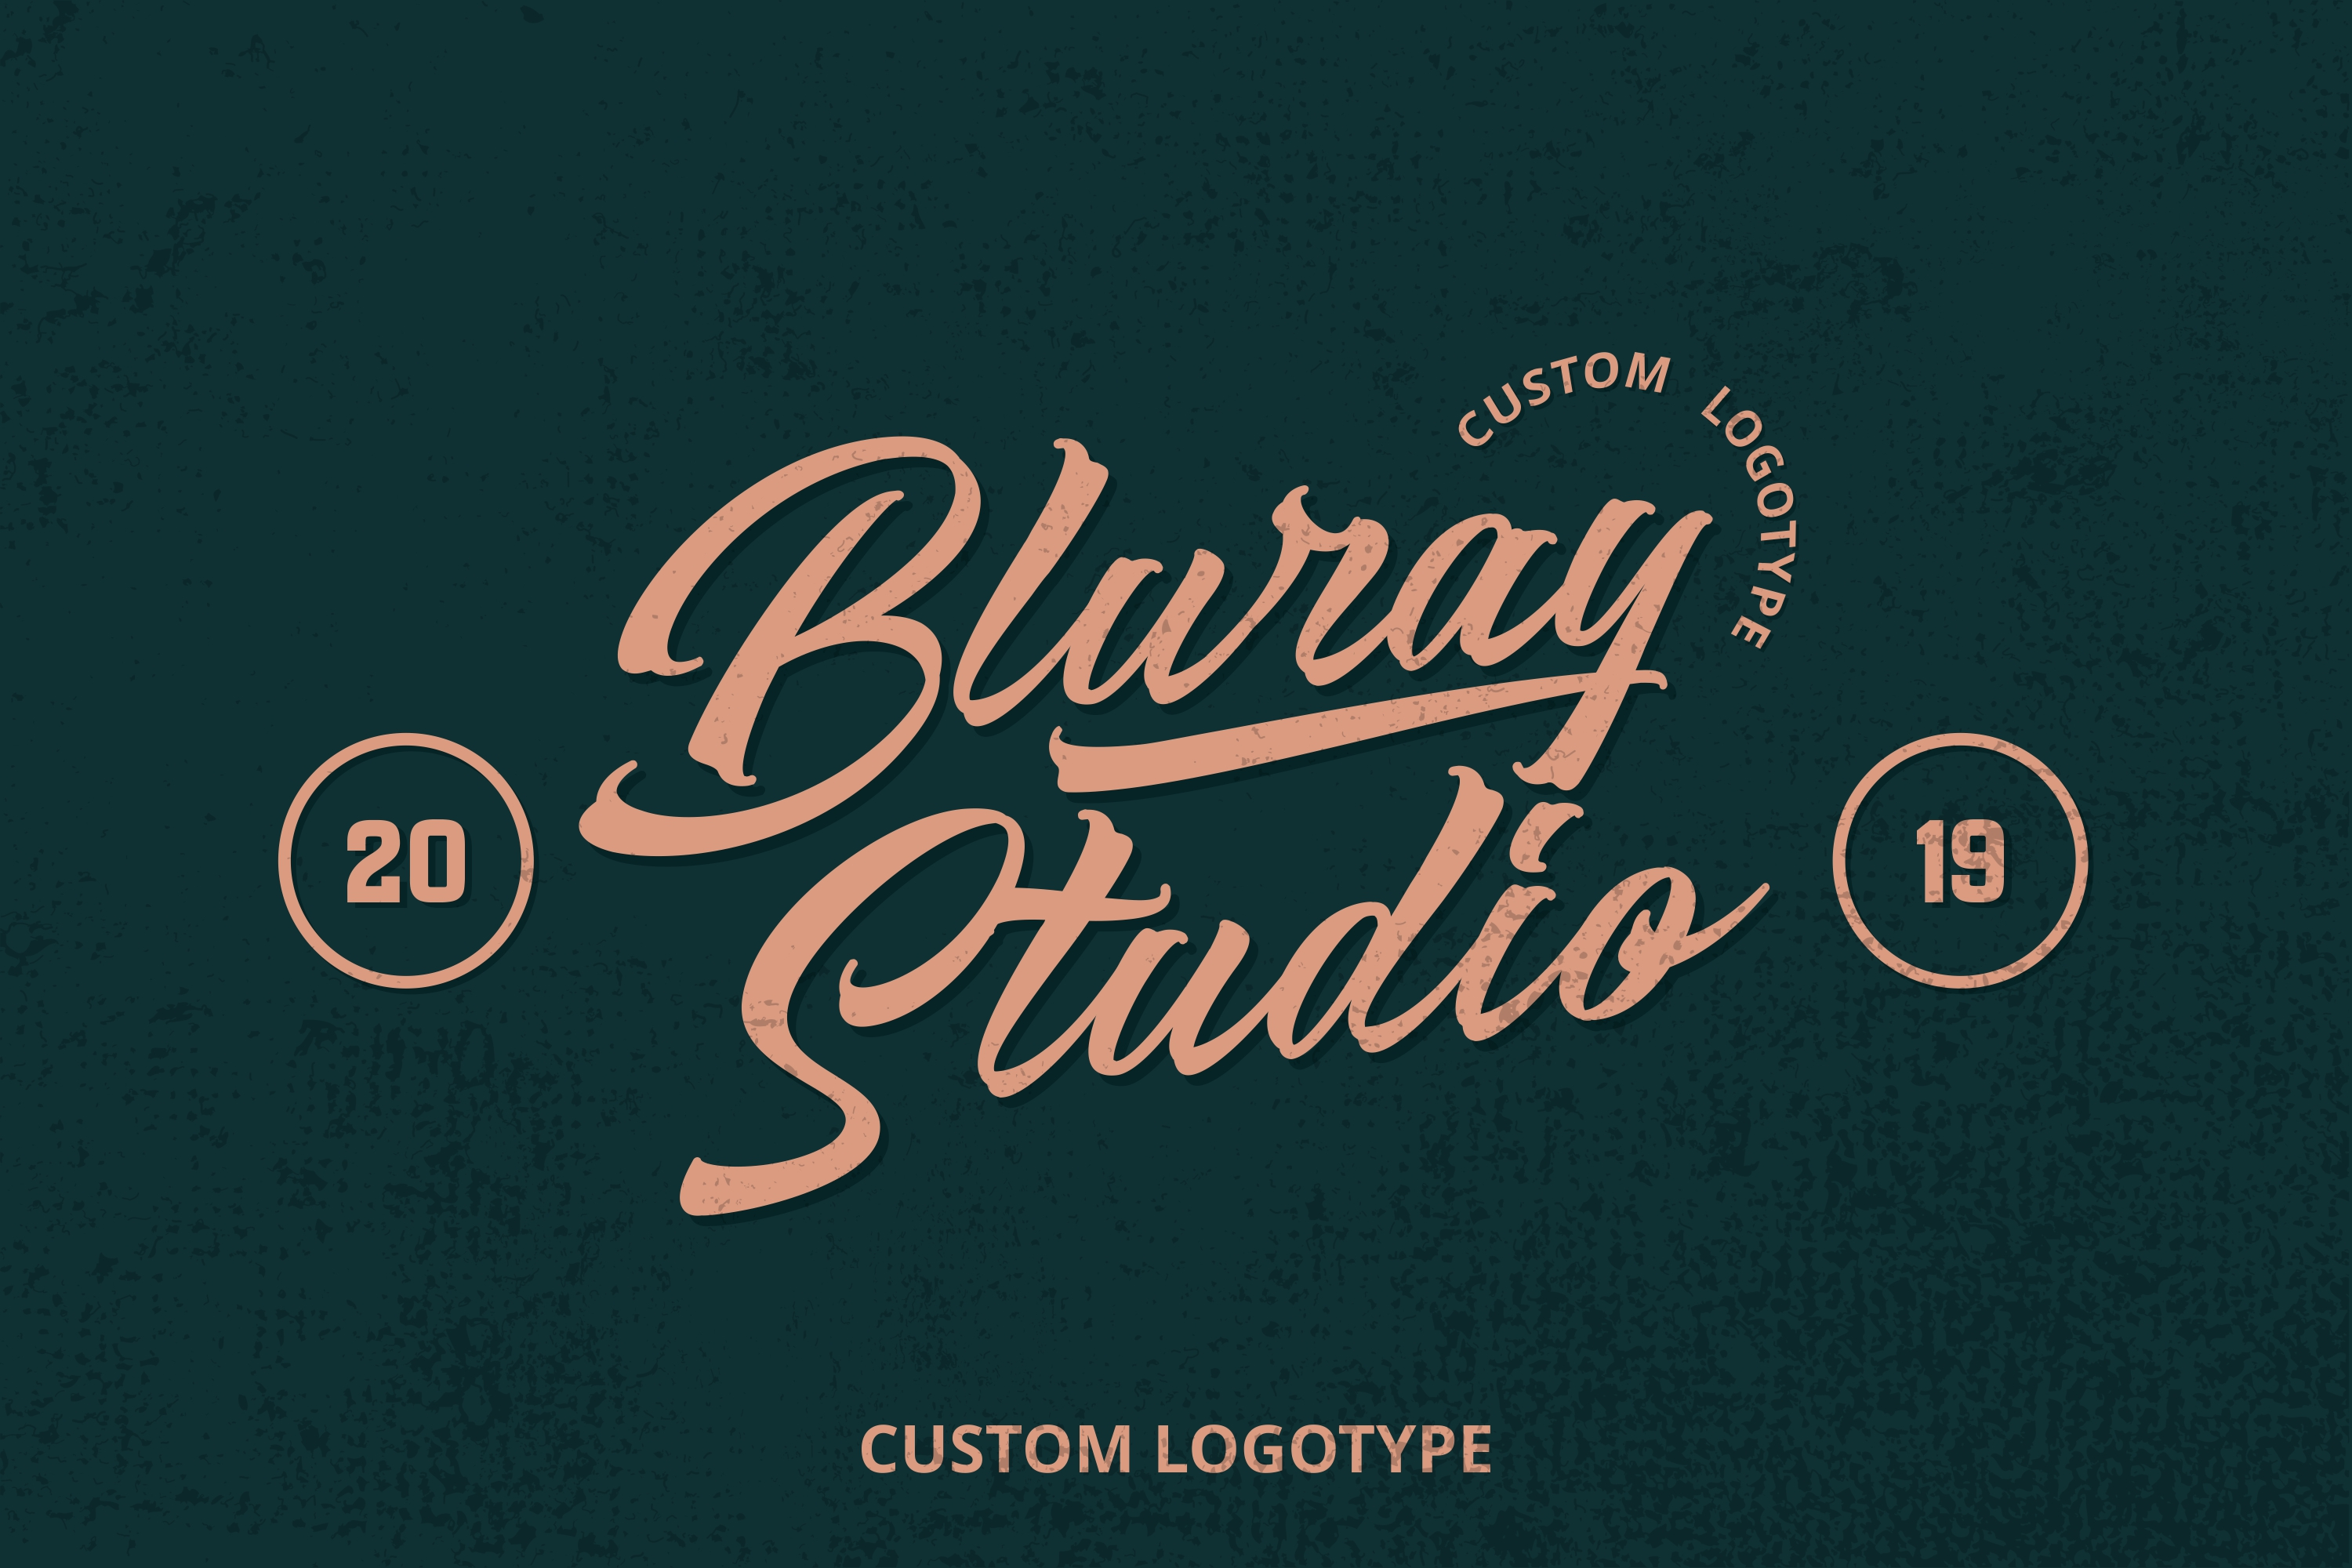 Backend Script Font example image 2